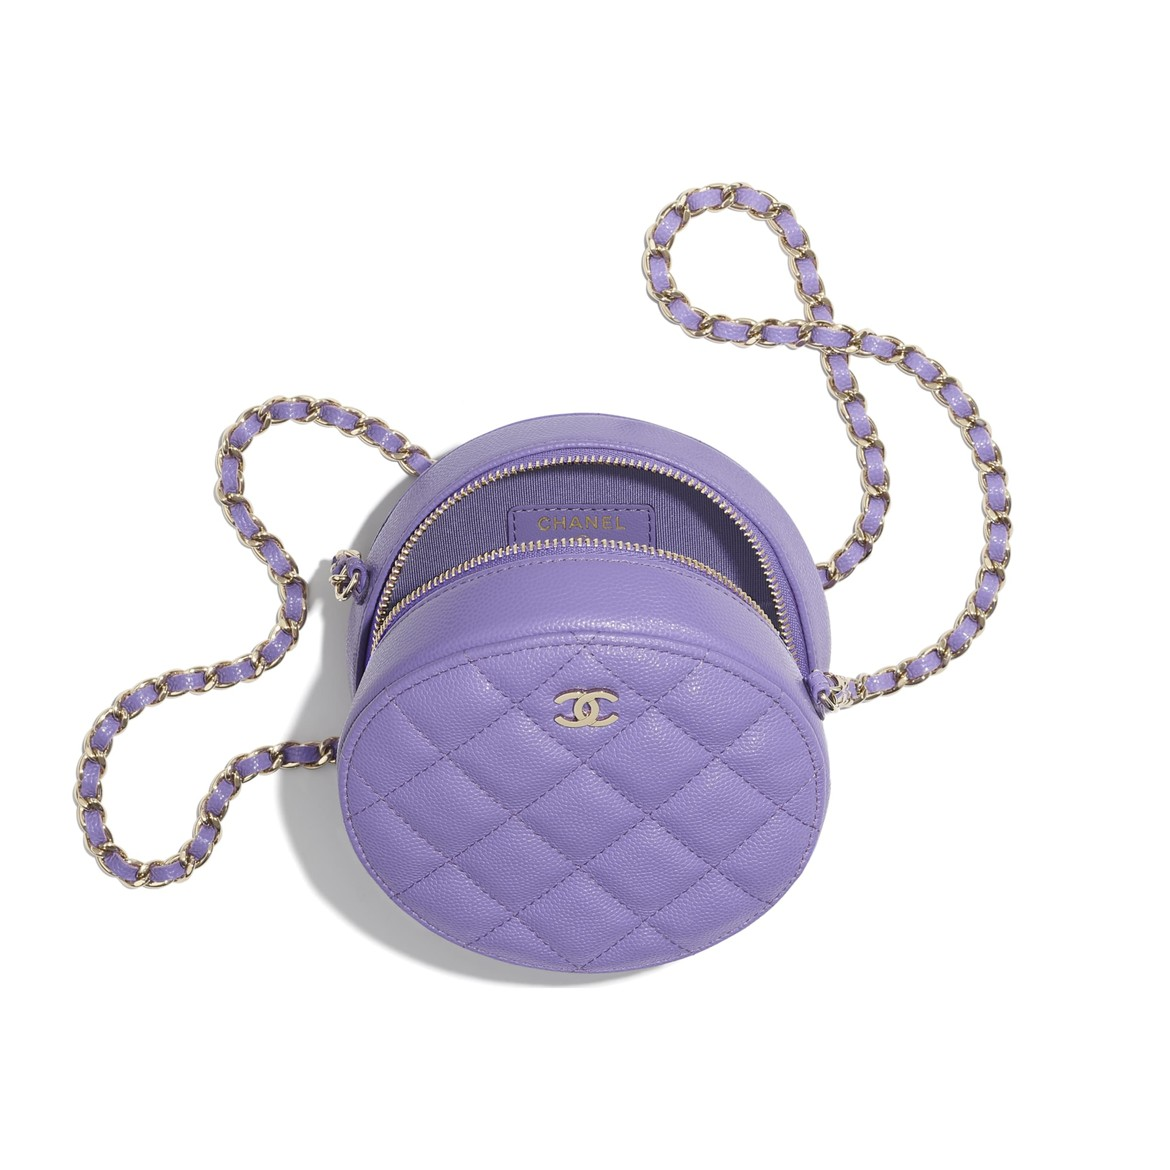 CHANEL classic clutch with chain HK$11,200